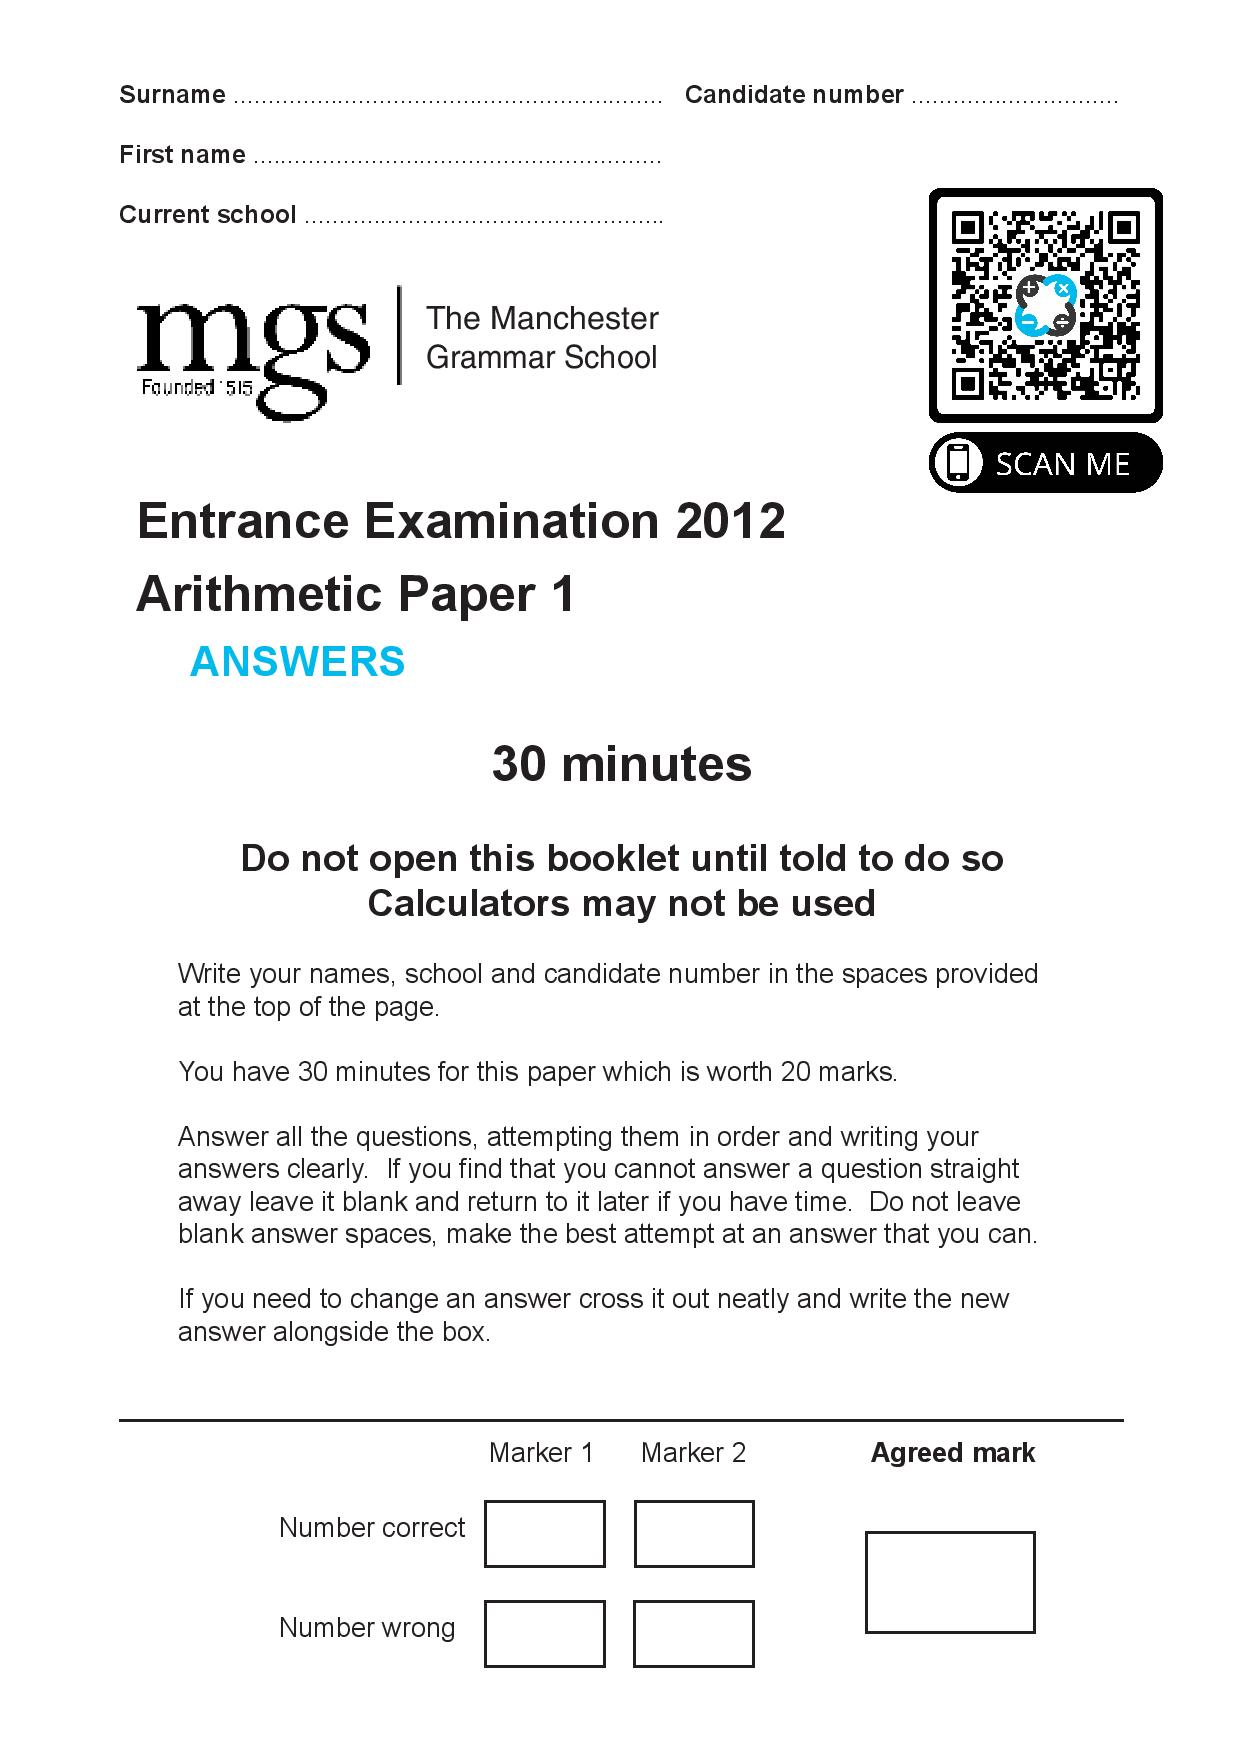 The Manchester Grammar School Entrance examination 2012 Arithmetic Paper 1 Answer Paper page 001